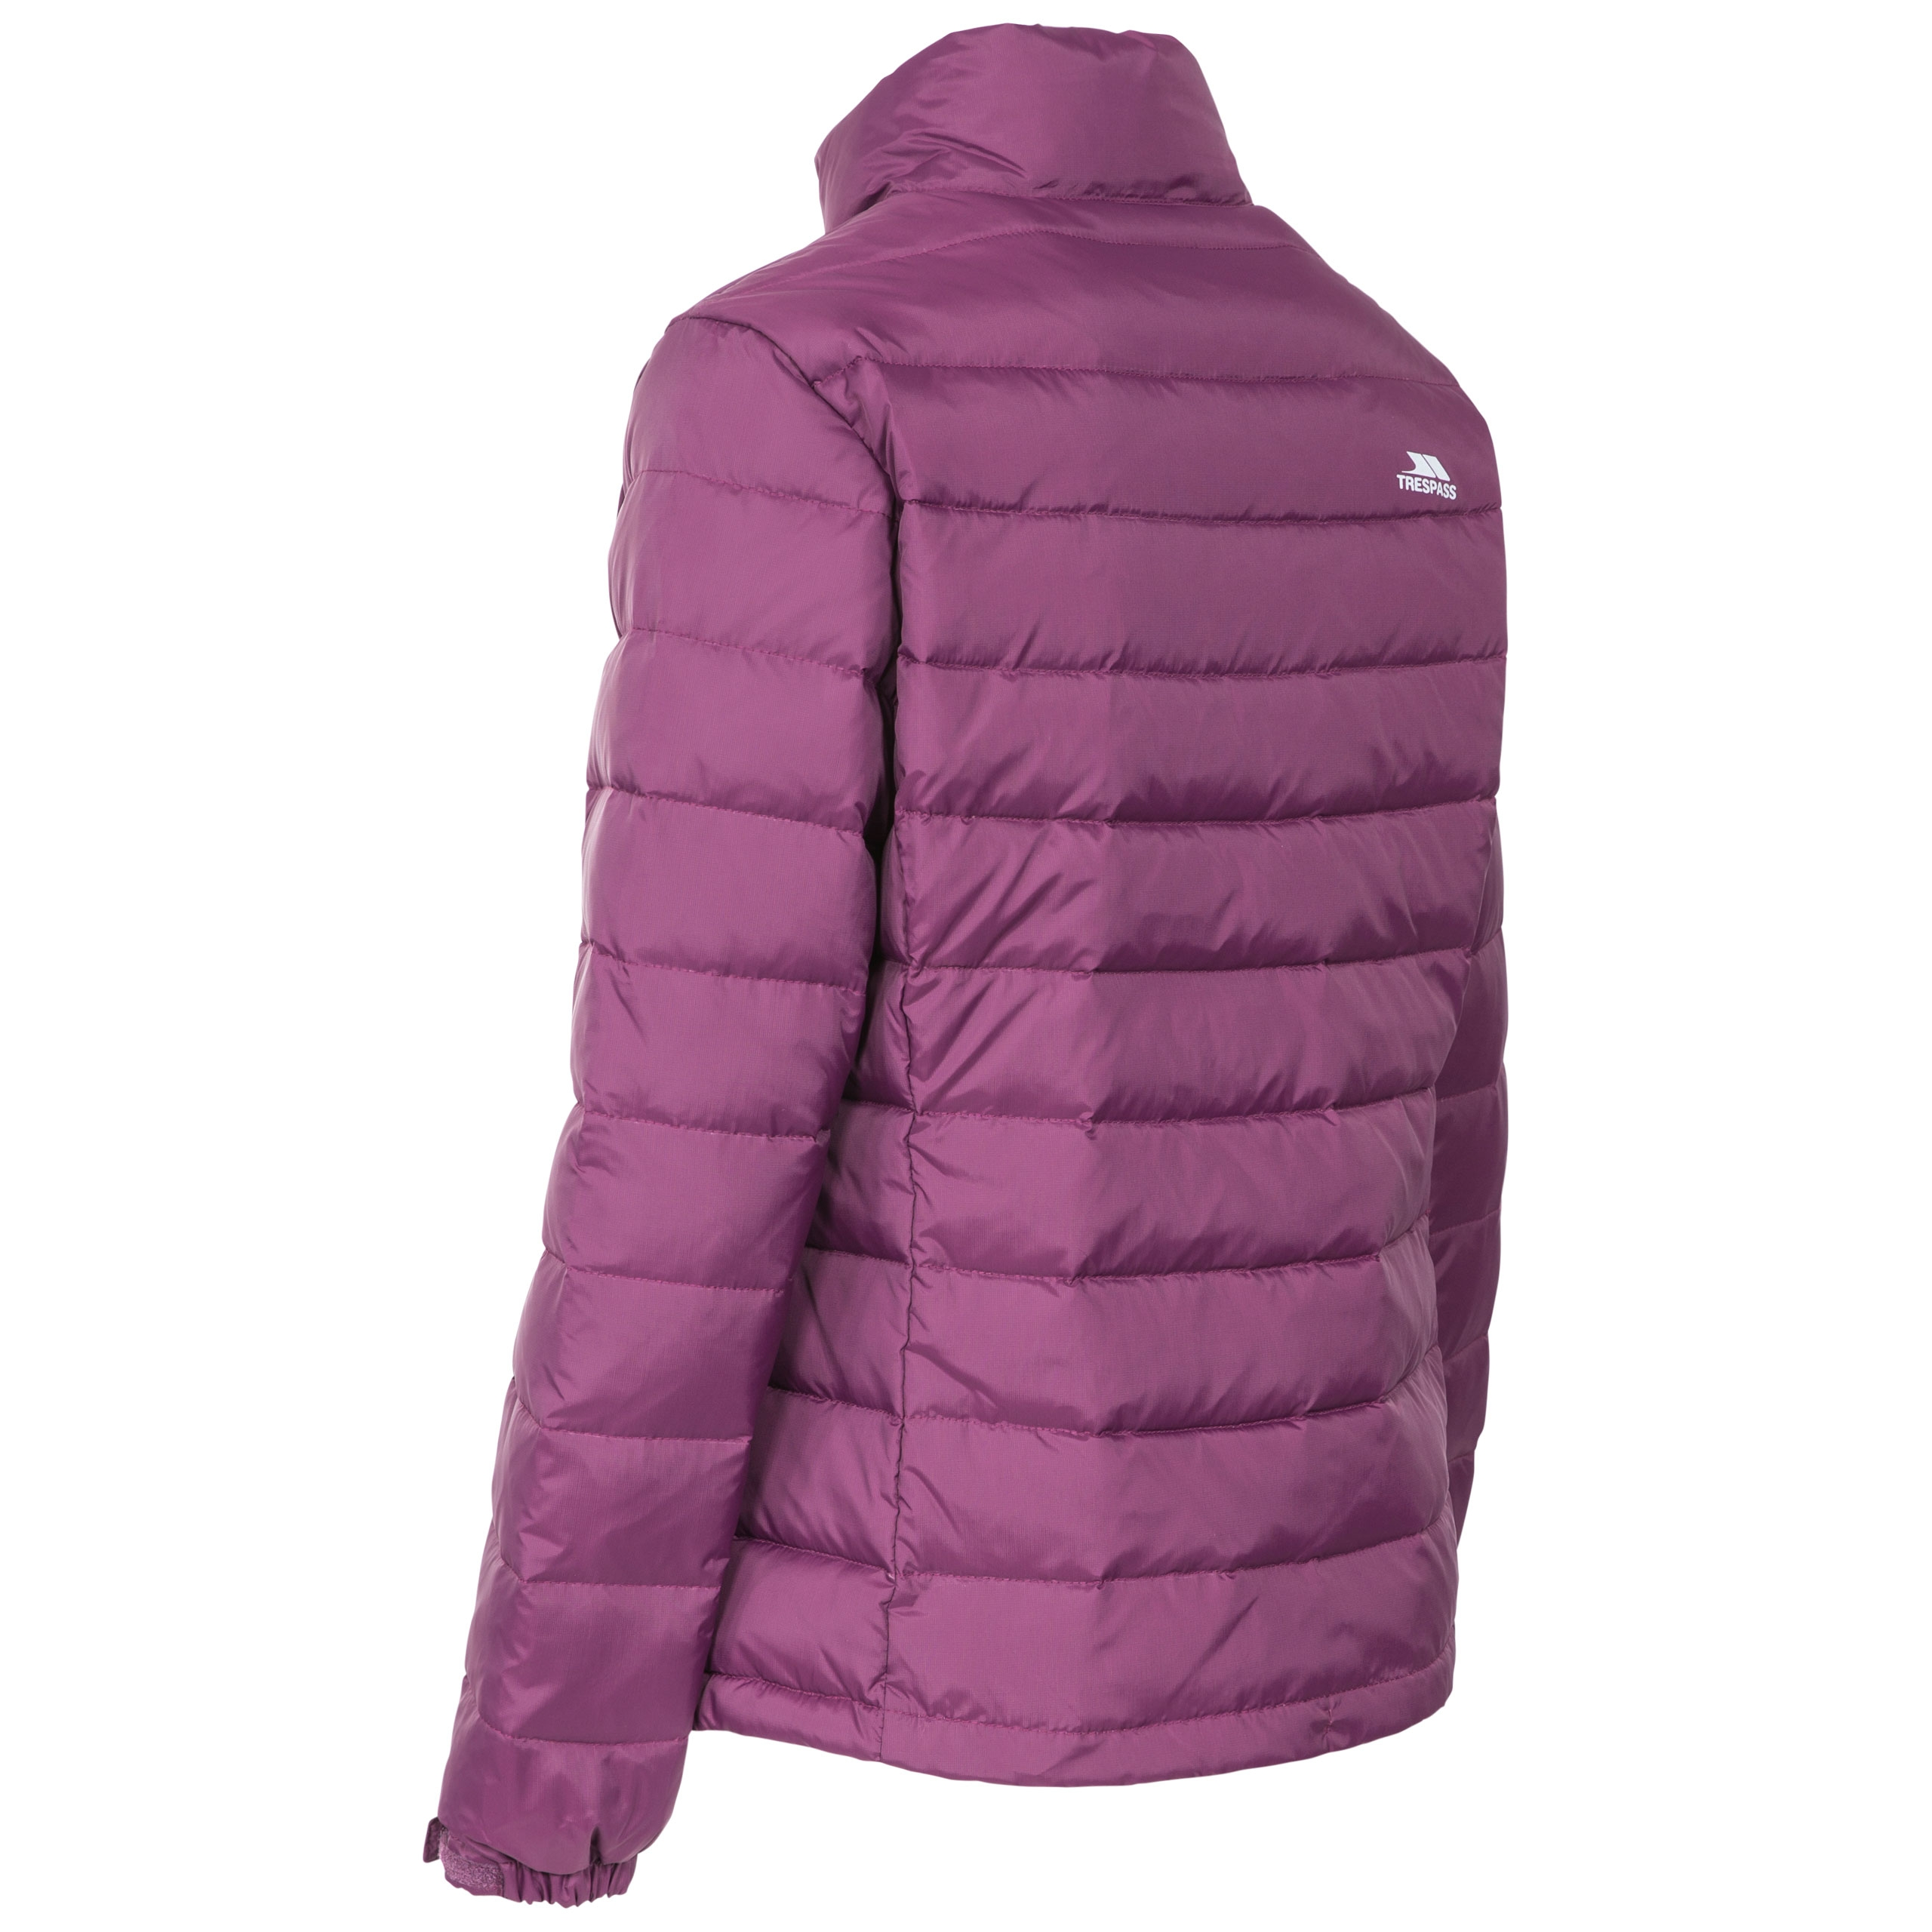 Trespass-Letty-Womens-Down-Jacket-Padded-and-Warm-in-Black-Navy-amp-Purple thumbnail 14